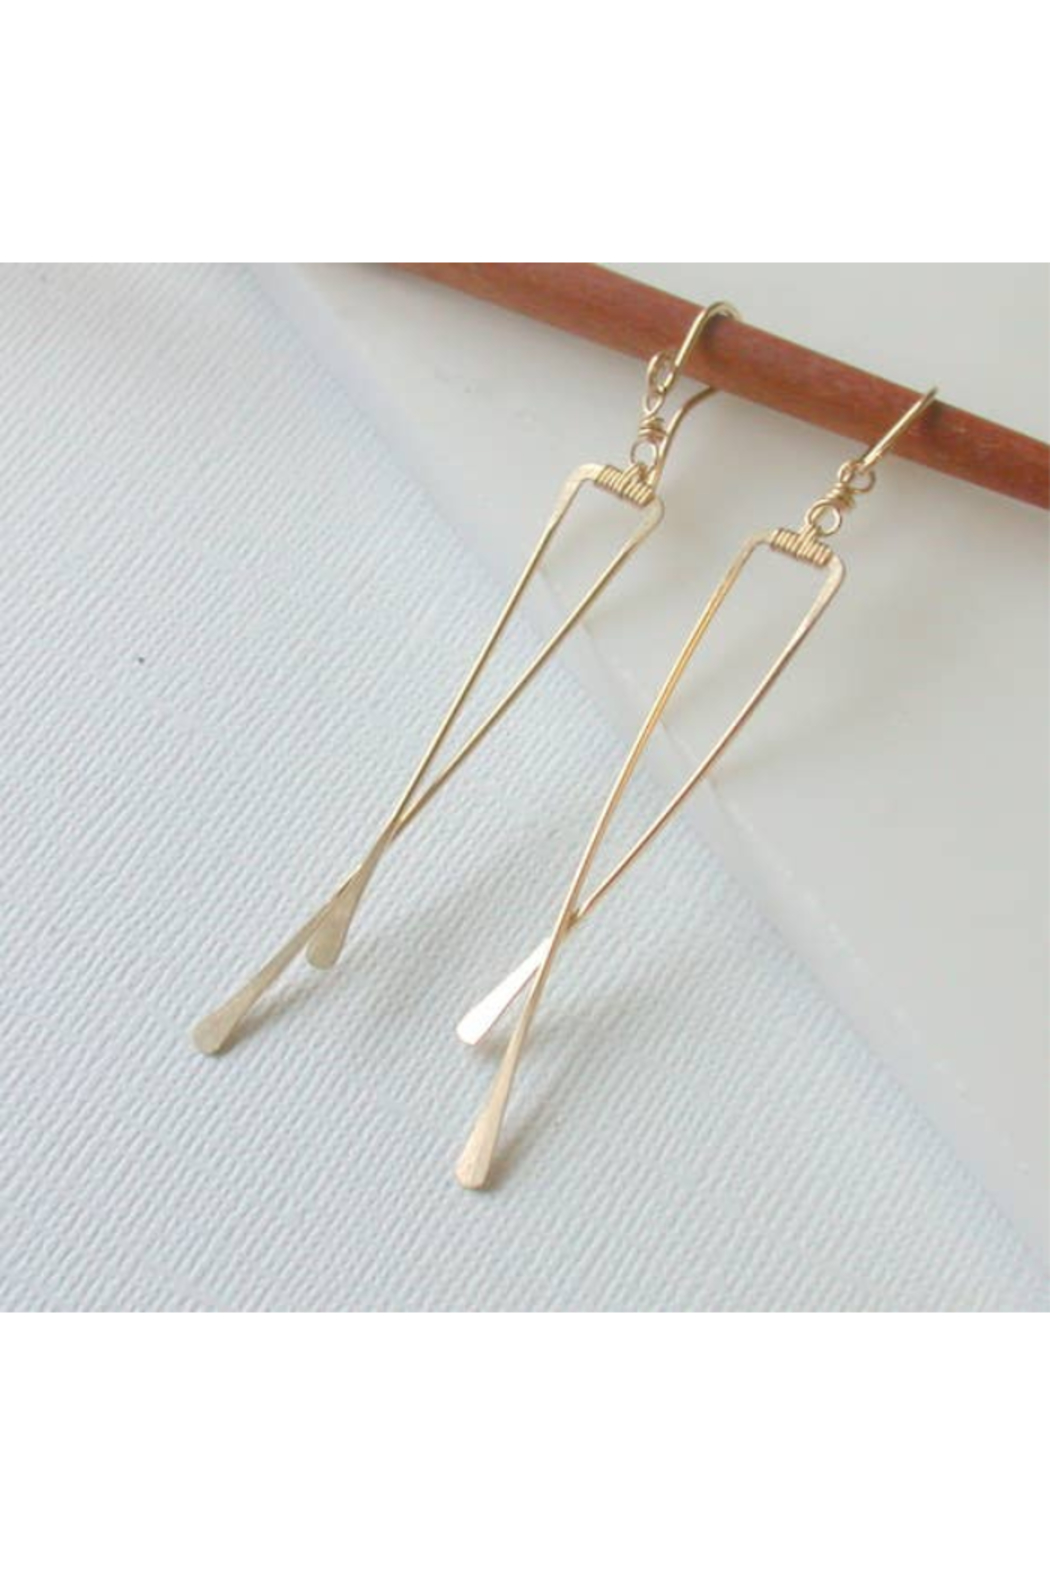 The Birds Nest ANGLED CRISSCROSS EARRINGS-14K GOLD FILL - Main Image